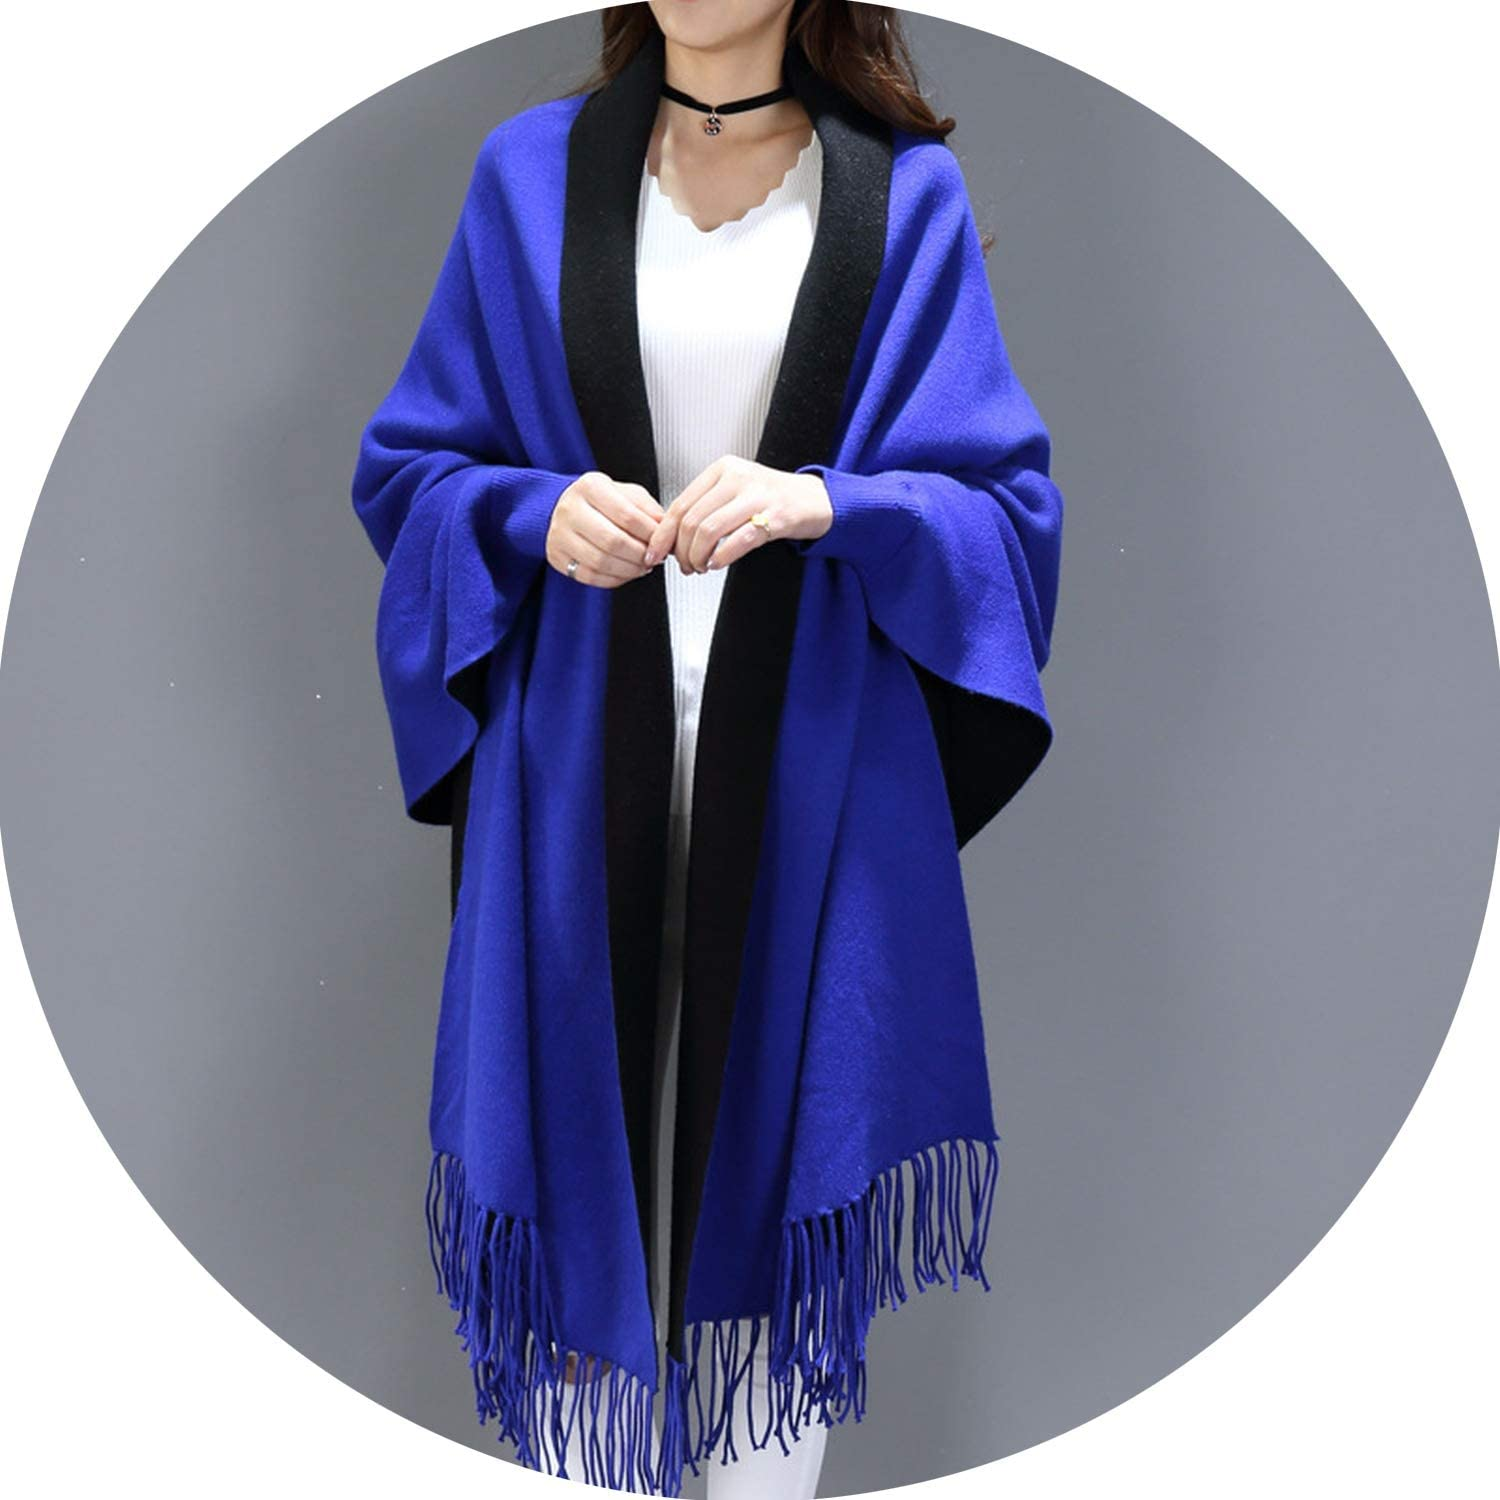 Blanket scarf ladies imitation cashmere cloak mantle coat autumn winter with sleeve shawl scarf,bluee and black,210x70cm